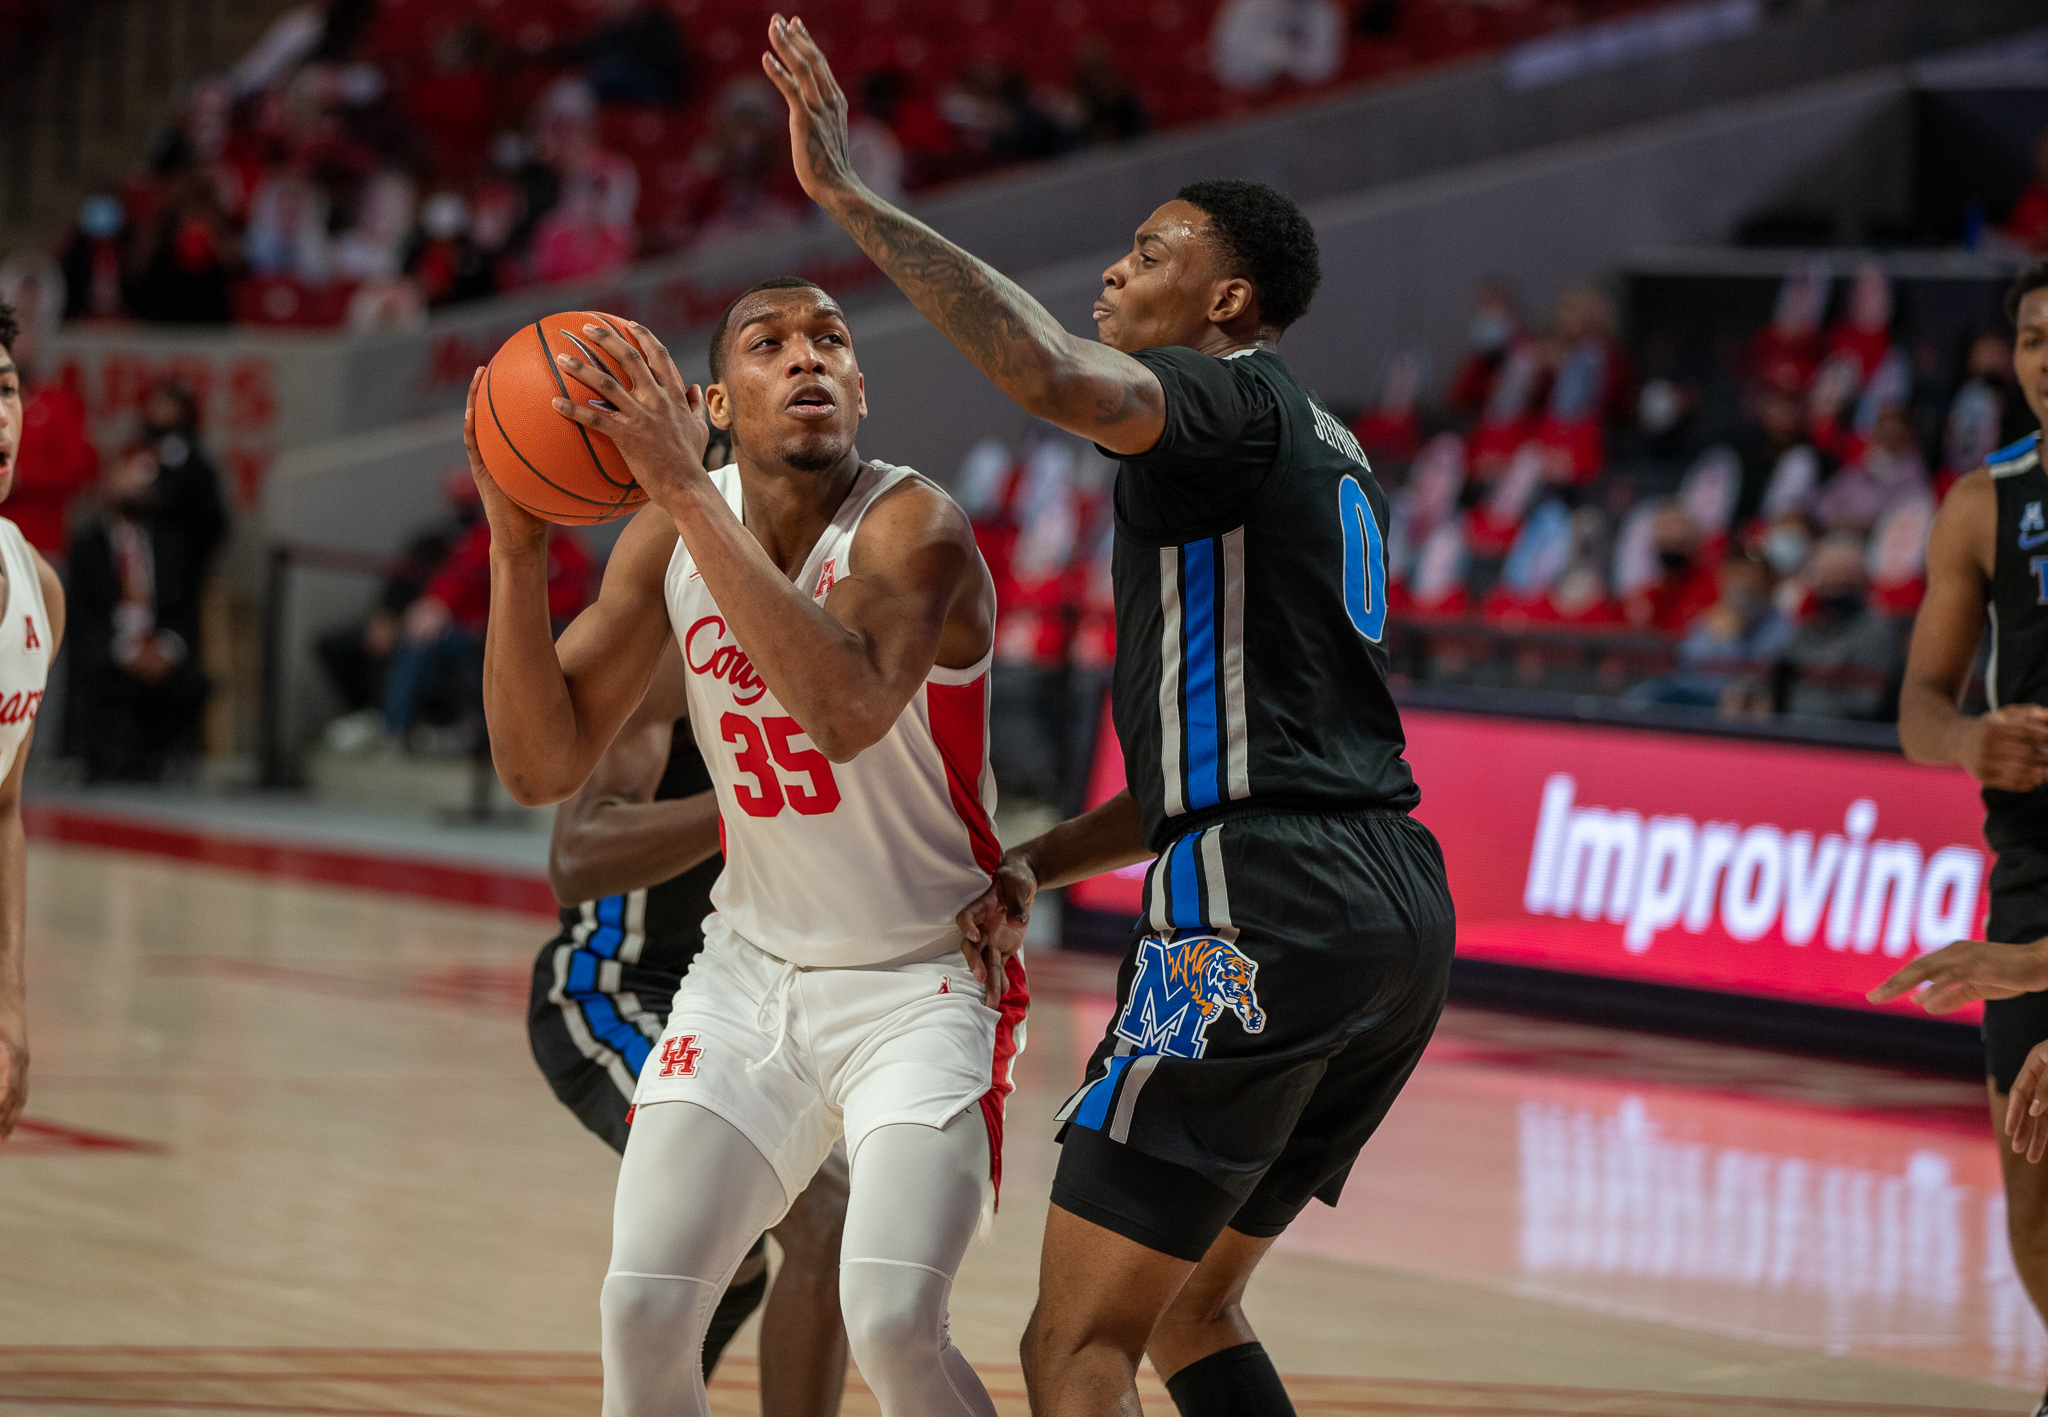 UH forward Fabian White Jr. goes up through the contact during last Sunday's game against Memphis at Fertitta Center. | Andy Yanez/The Cougar